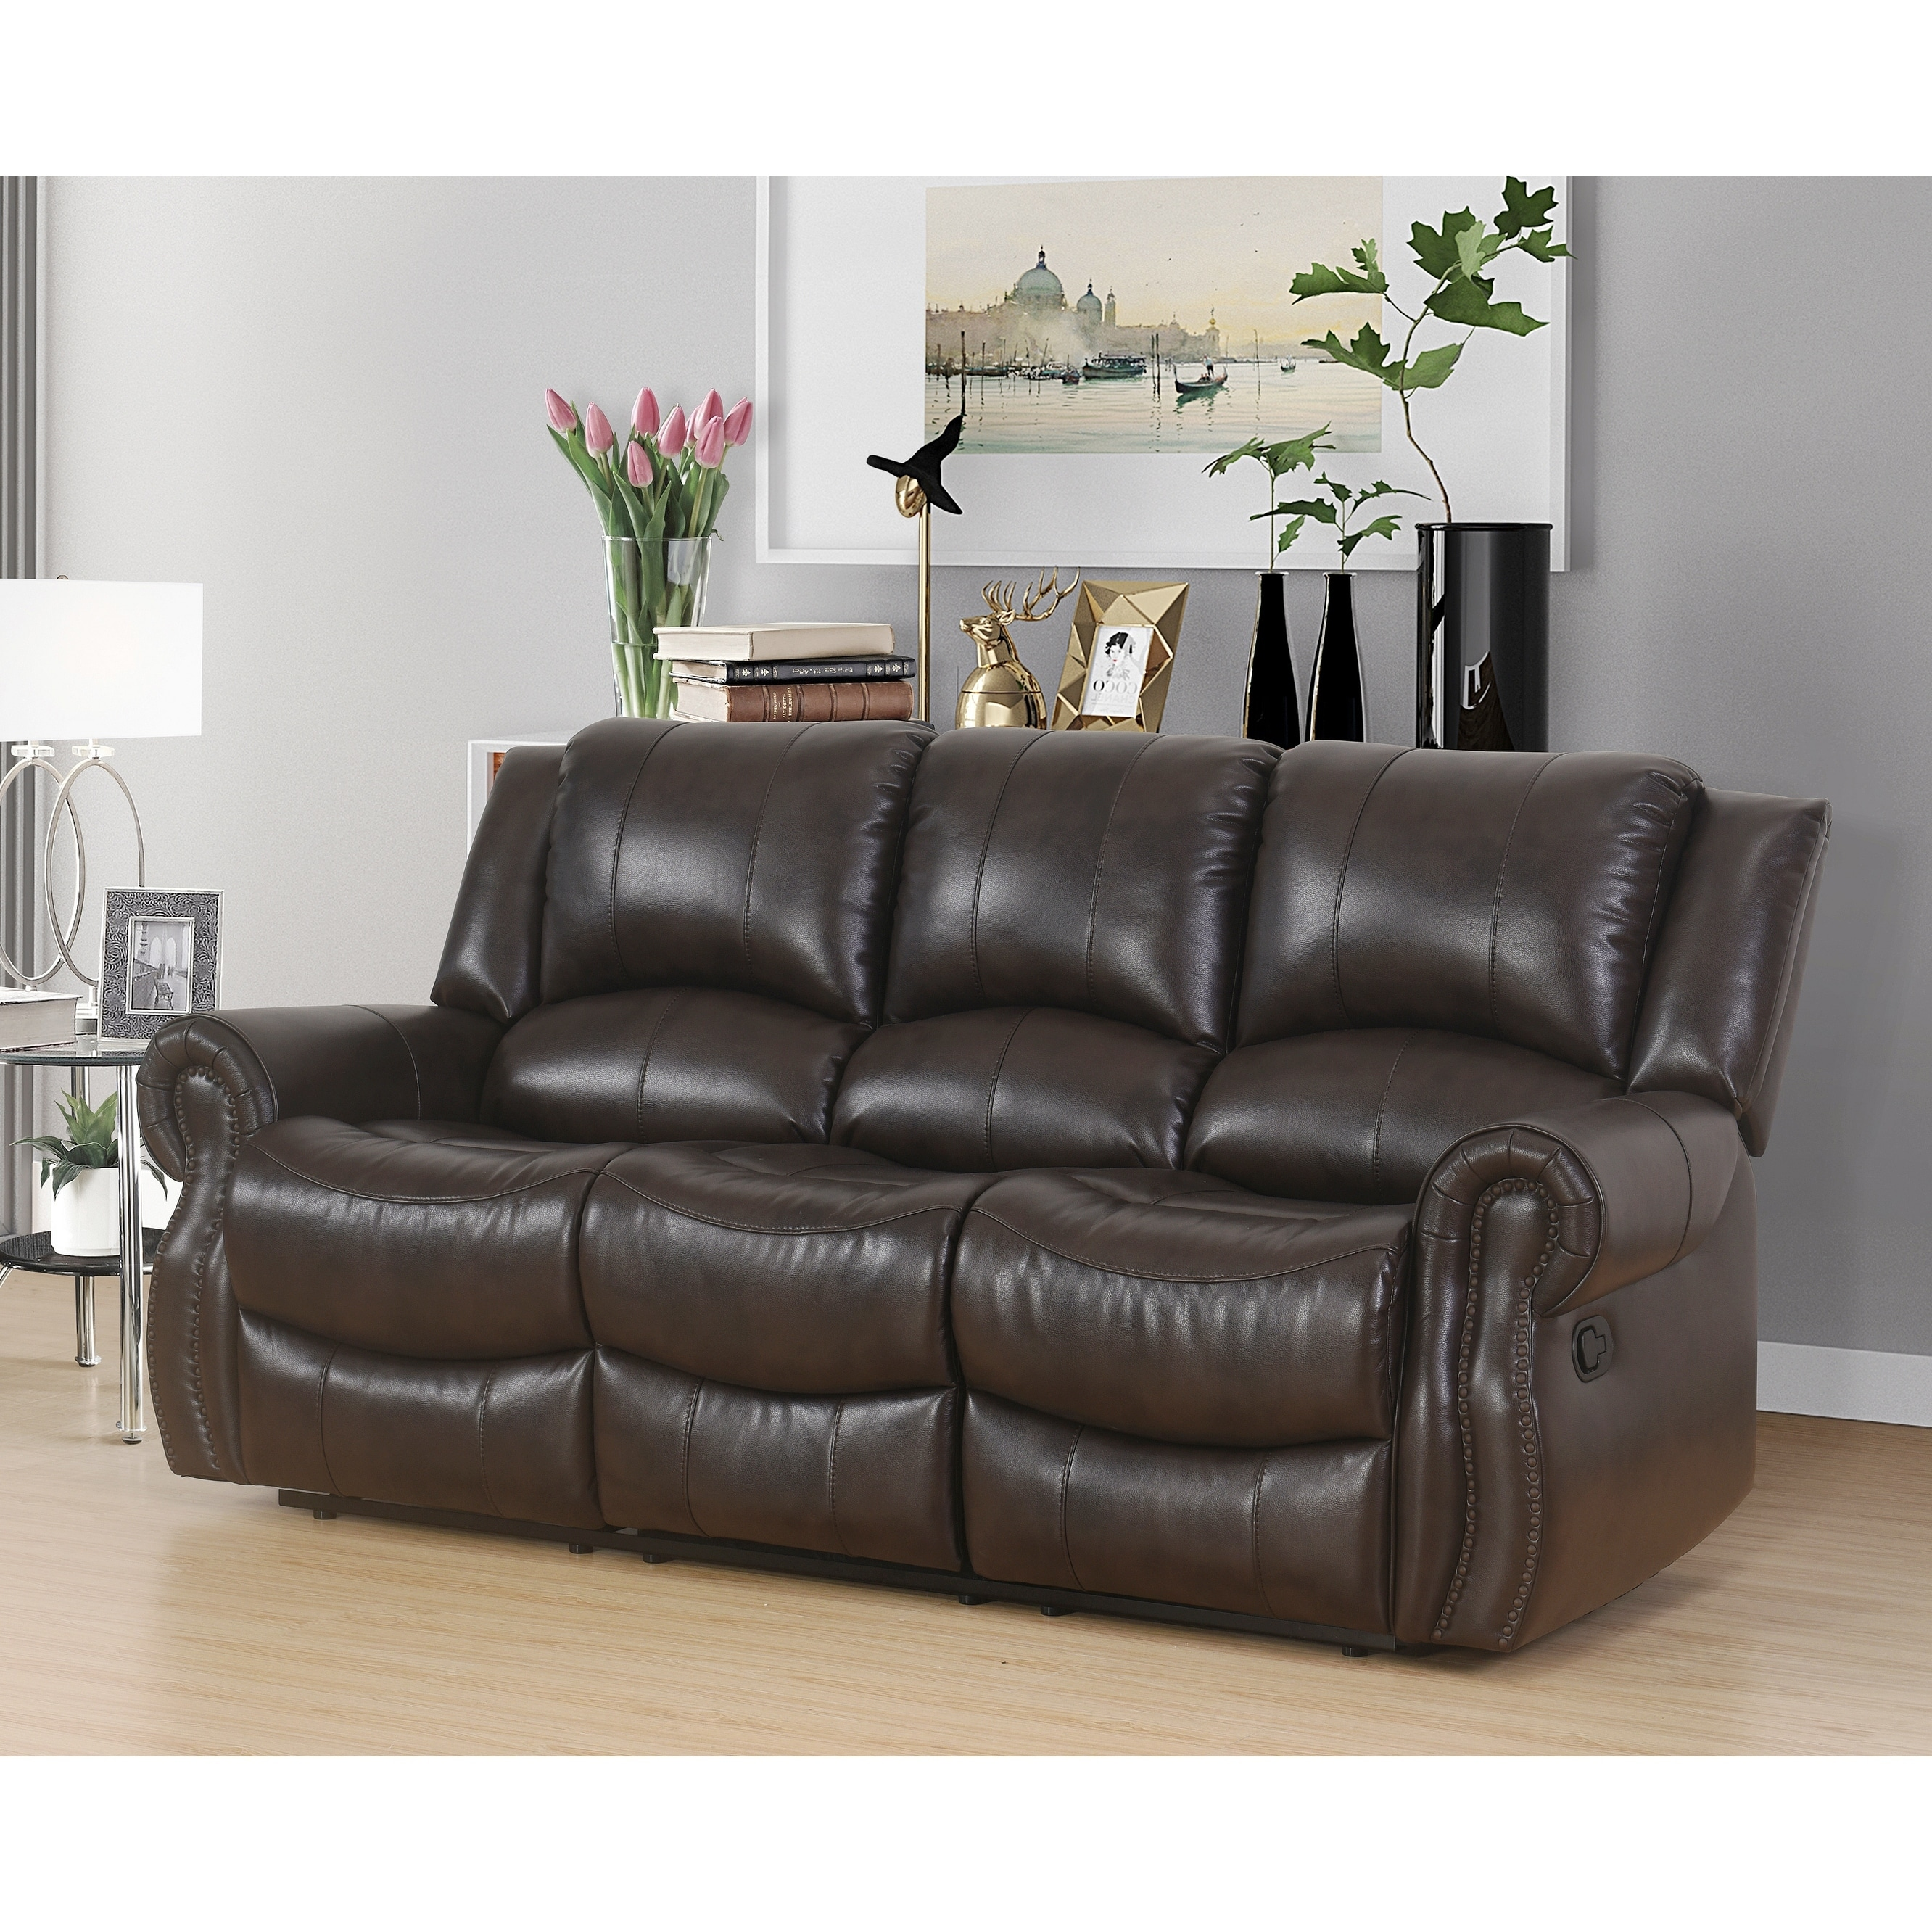 Shop Abbyson Bradford Brown Faux Leather Reclining Sofa - On Sale ...